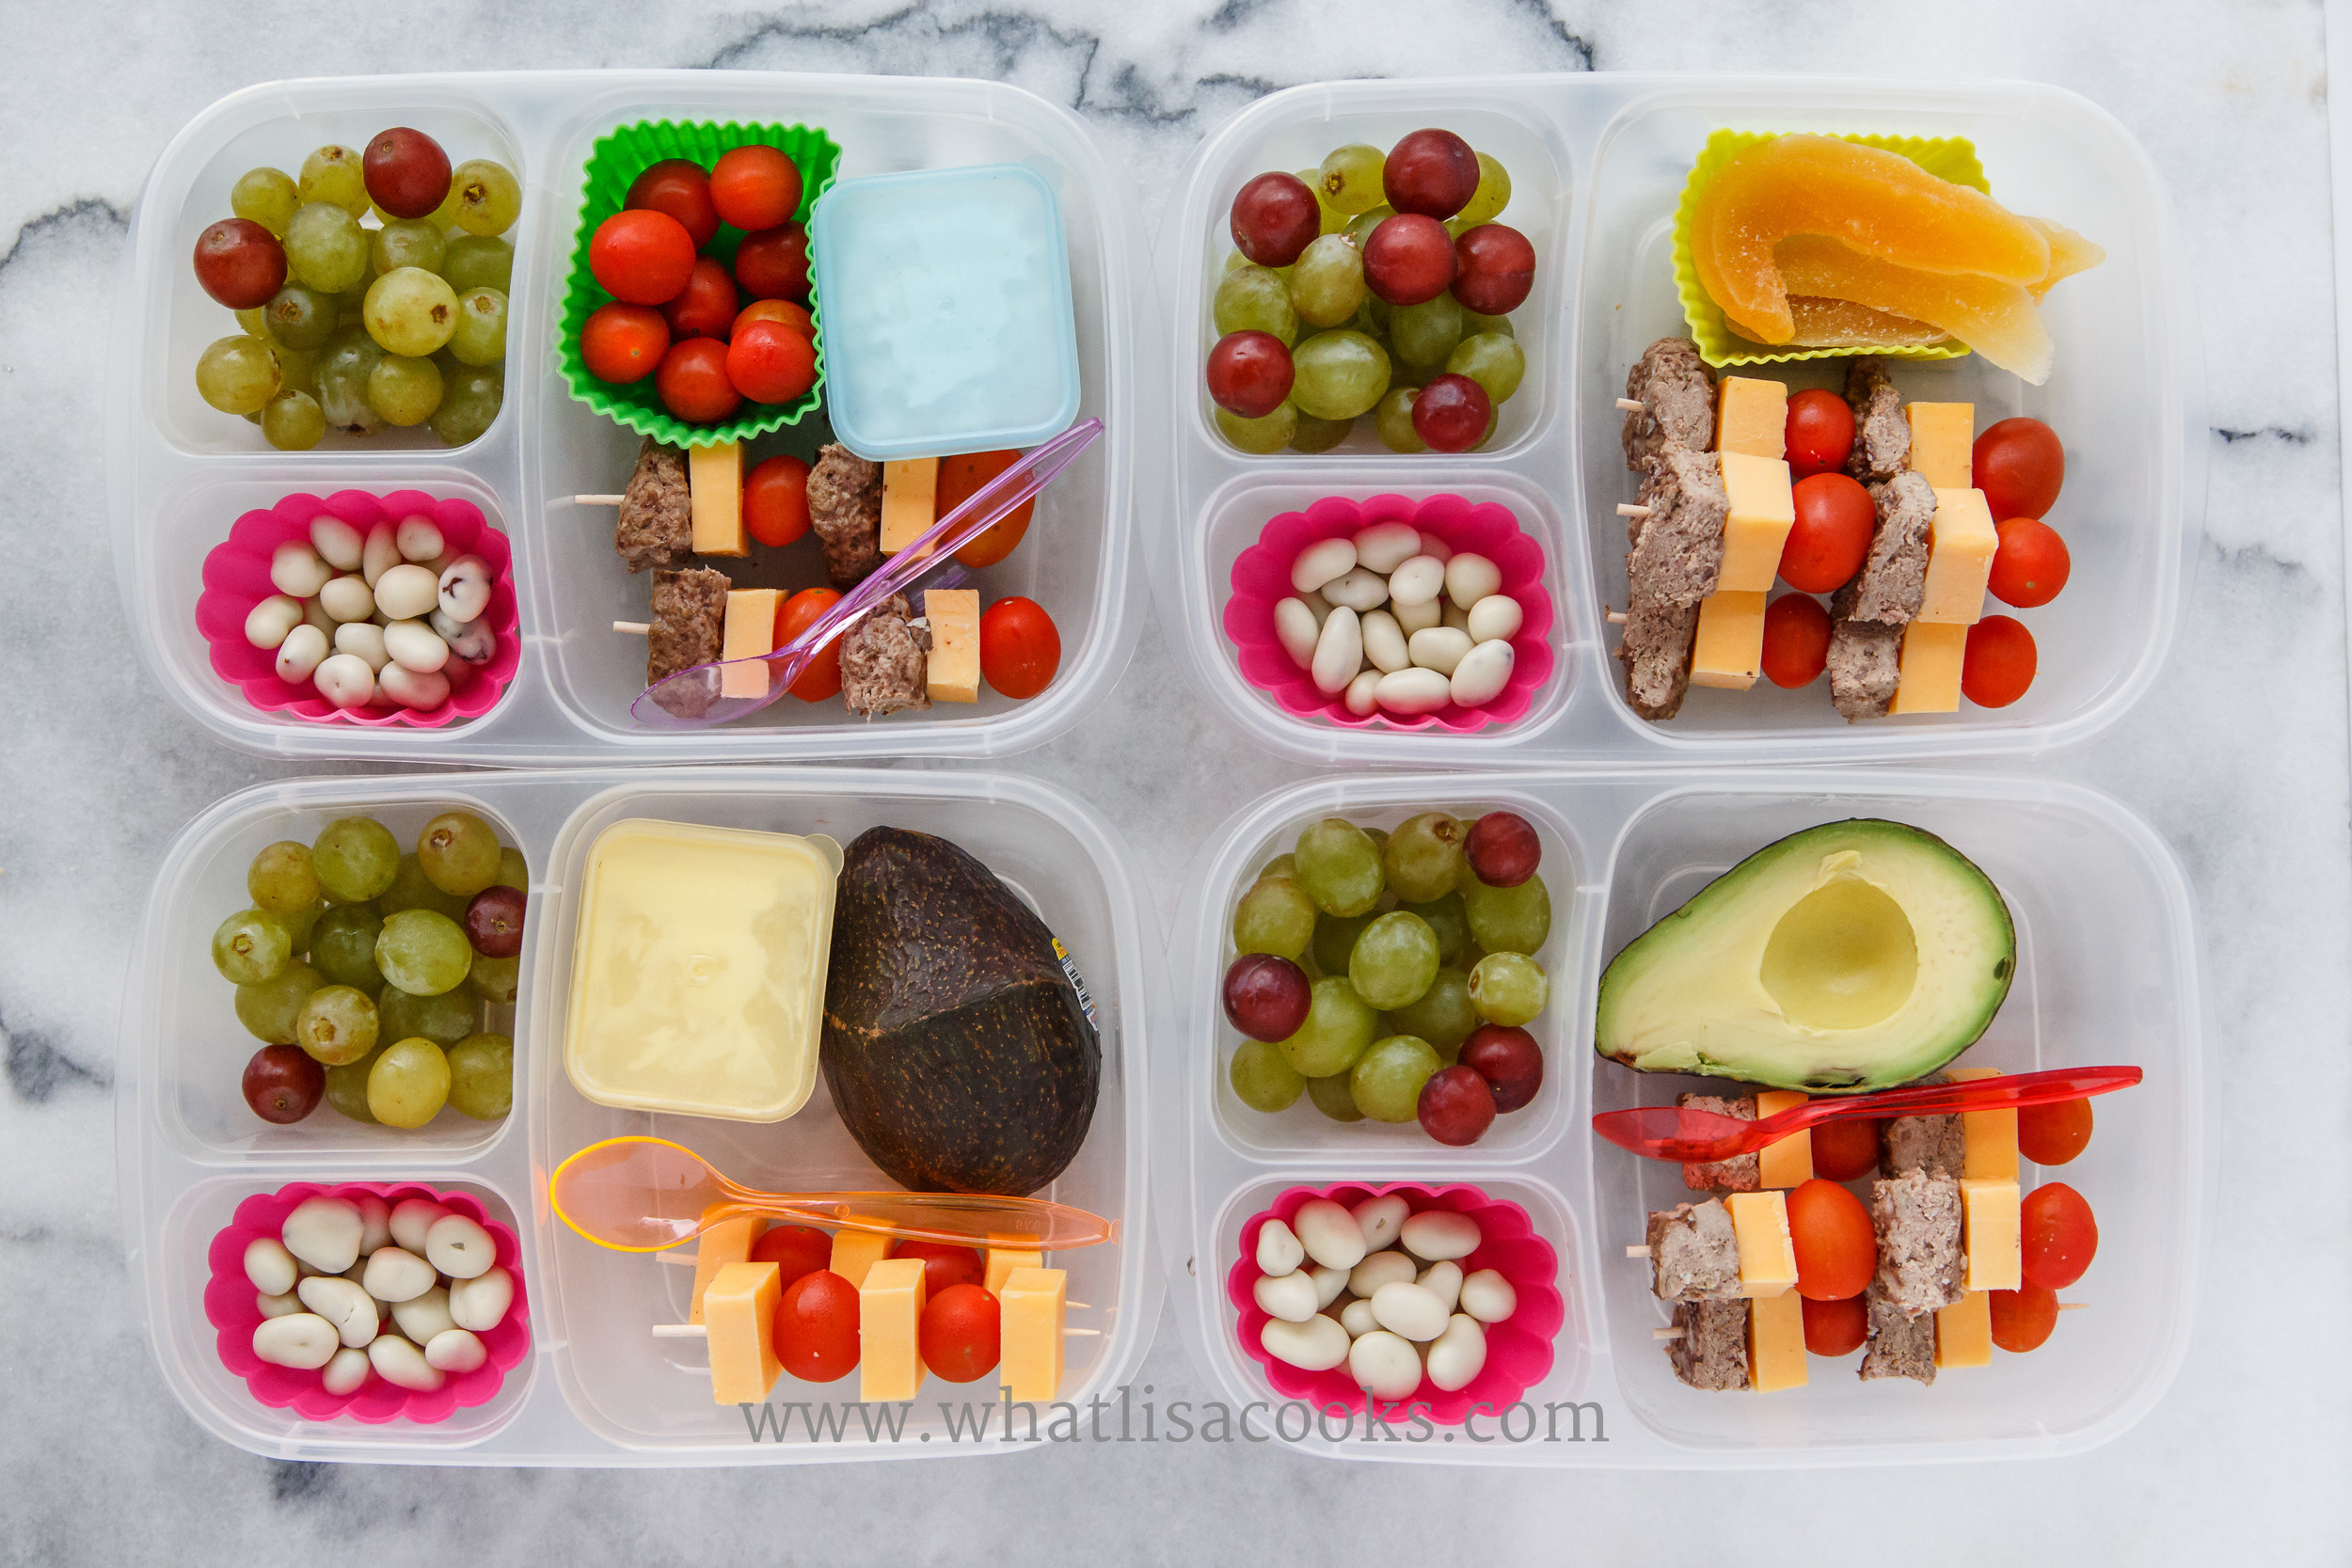 Bunless burger sticks: bites of homemade hamburger patty, cheese, tomatoes on skewers.  Grapes and yogurt covered raisins on the side.  Two have avocado, one has dried mango, one has yogurt, one has cottage cheese.